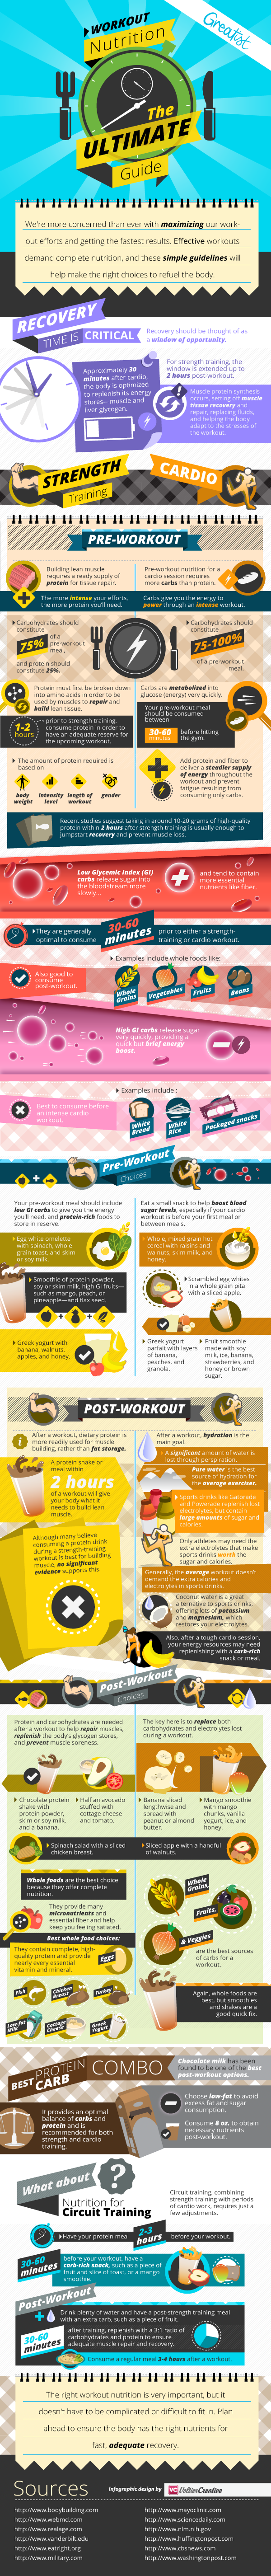 Workout Nutrition Guide